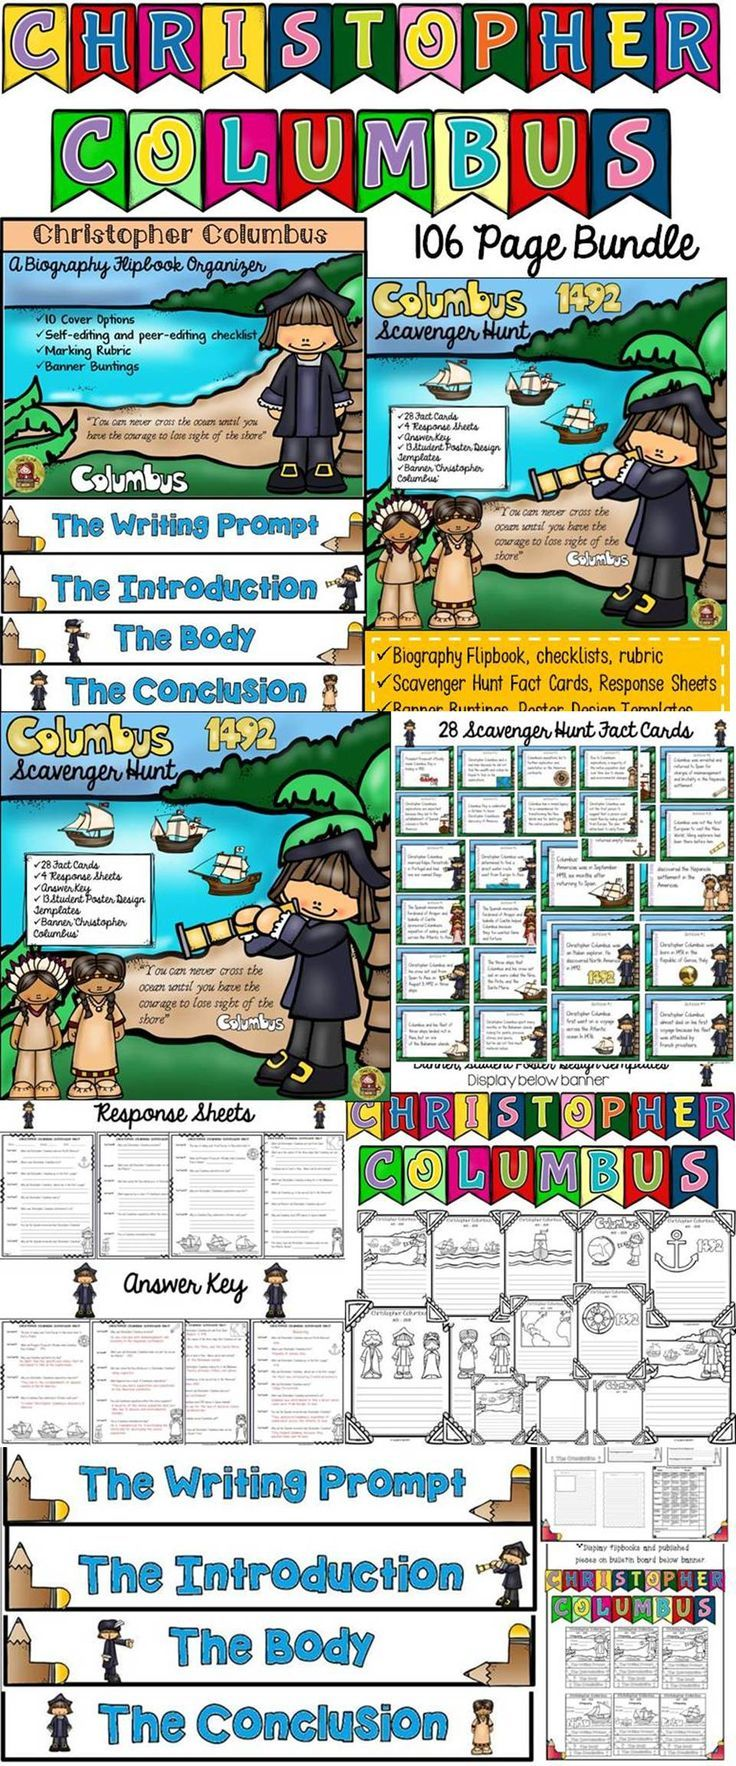 Make learning about Christopher Columbus fun and interesting with this 106 page bundle that brings significance to the celebration of Columbus Day. Students will research and write a biography on Christopher Columbus using the flipbook organizer. They will also go on a Scavenger Hunt and pick up interesting facts about Christopher Columbus. https://www.teacherspayteachers.com/Product/CHRISTOPHER-COLUMBUS-BUNDLE-BIOGRAPHY-SCAVENGER-HUNT-POSTERS-BANNER-2122800